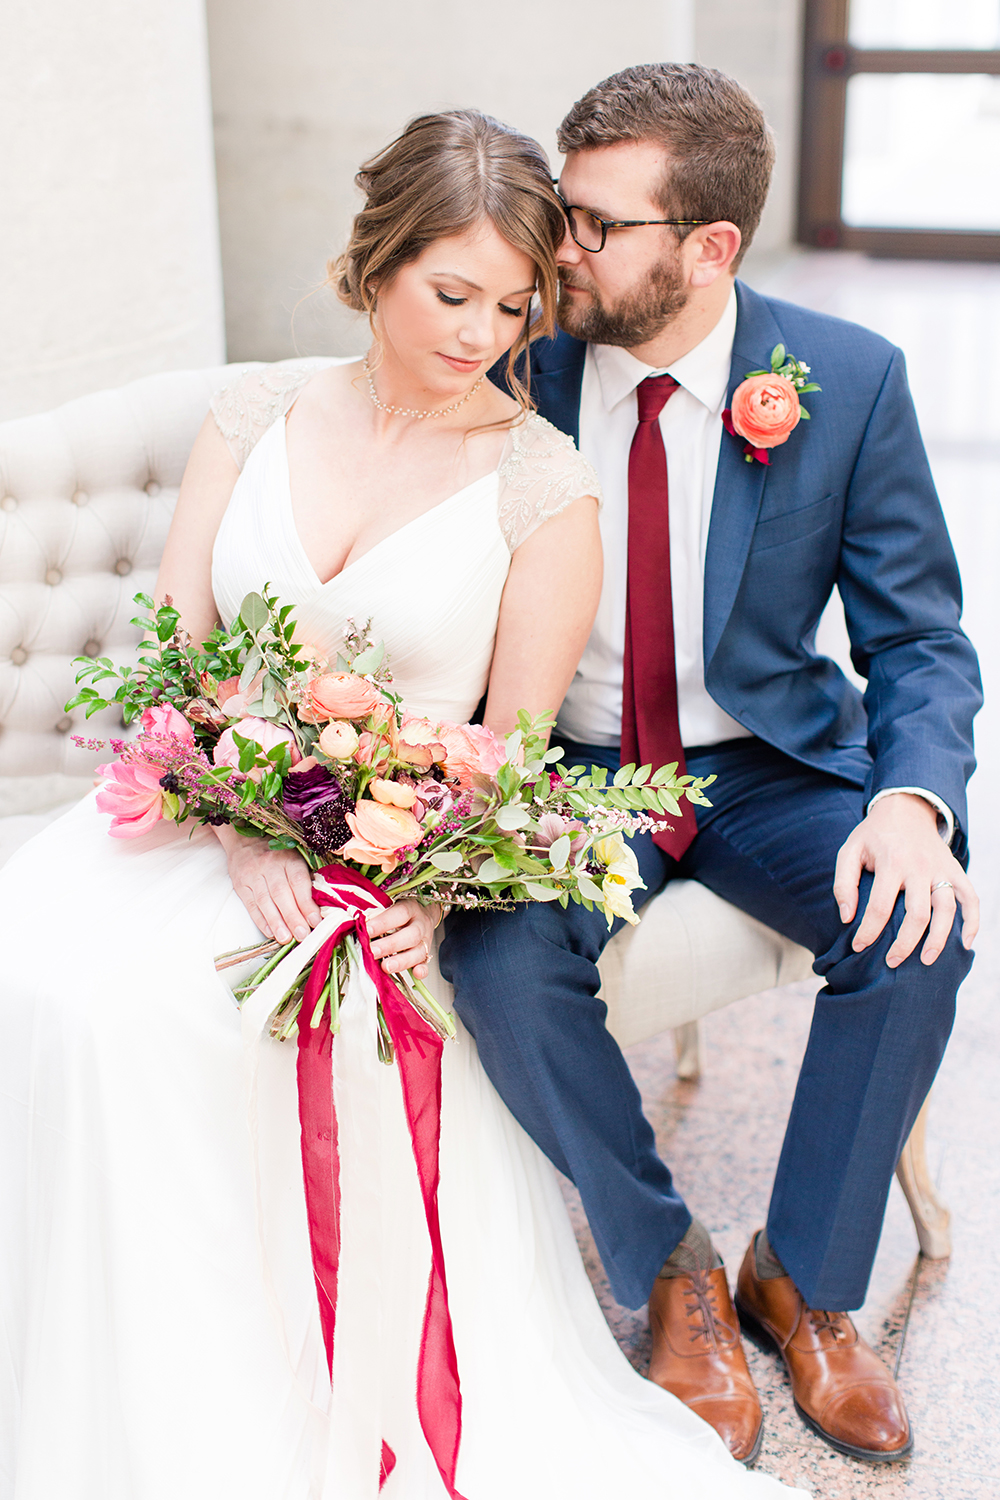 wedding inspo - photo by Lauren Lee Photography http://ruffledblog.com/modern-grecian-inspired-wedding-ideas